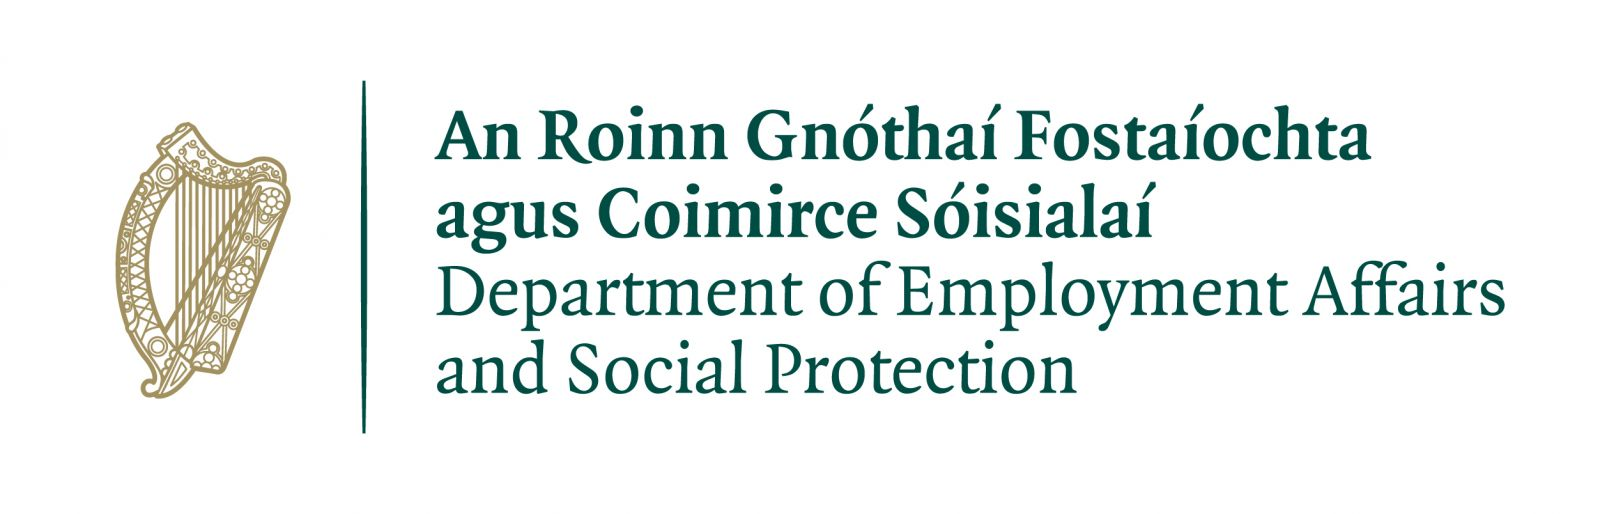 Department of Employment Affairs and Social Protection